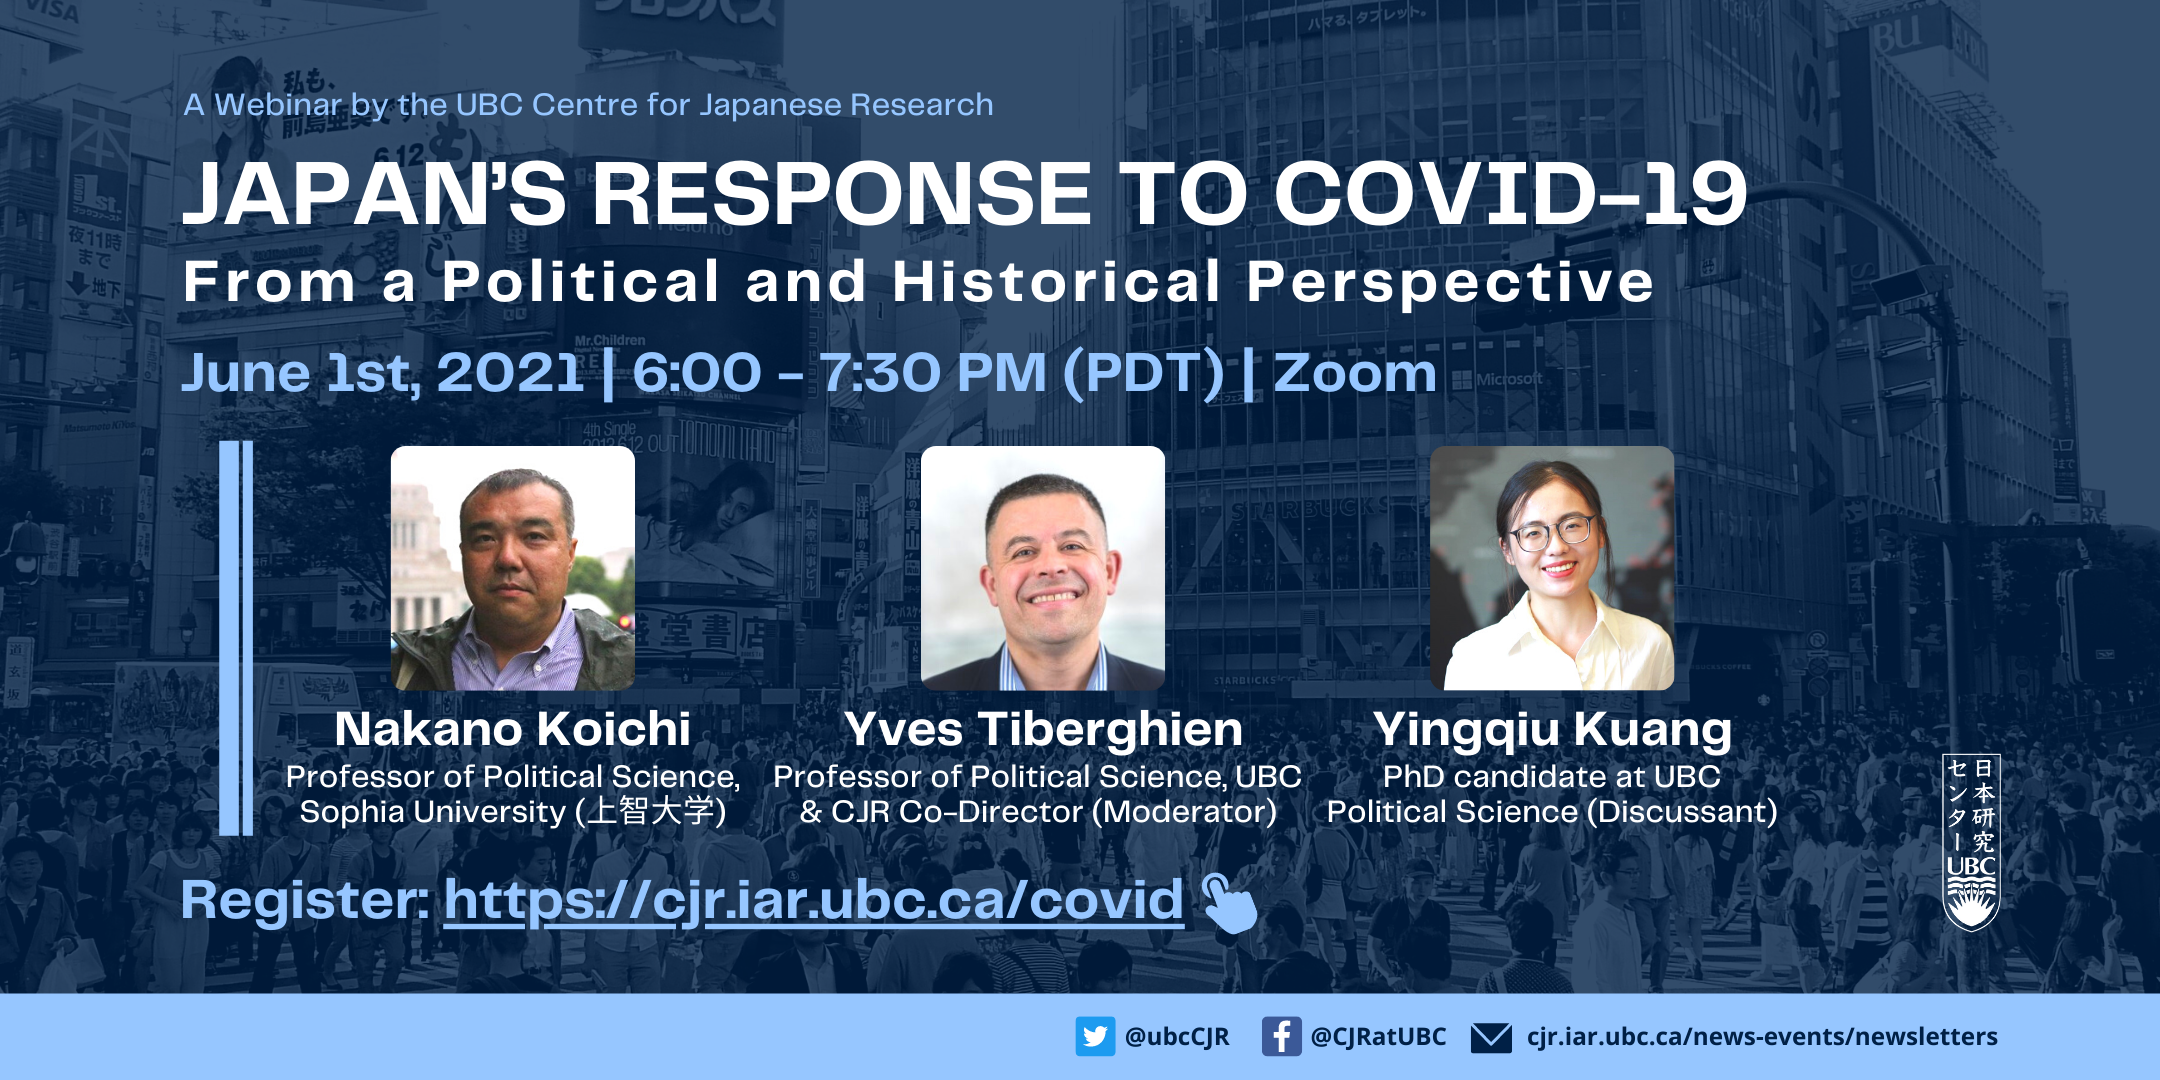 Japan's Response to COVID 19 from Political and Historical Perspective